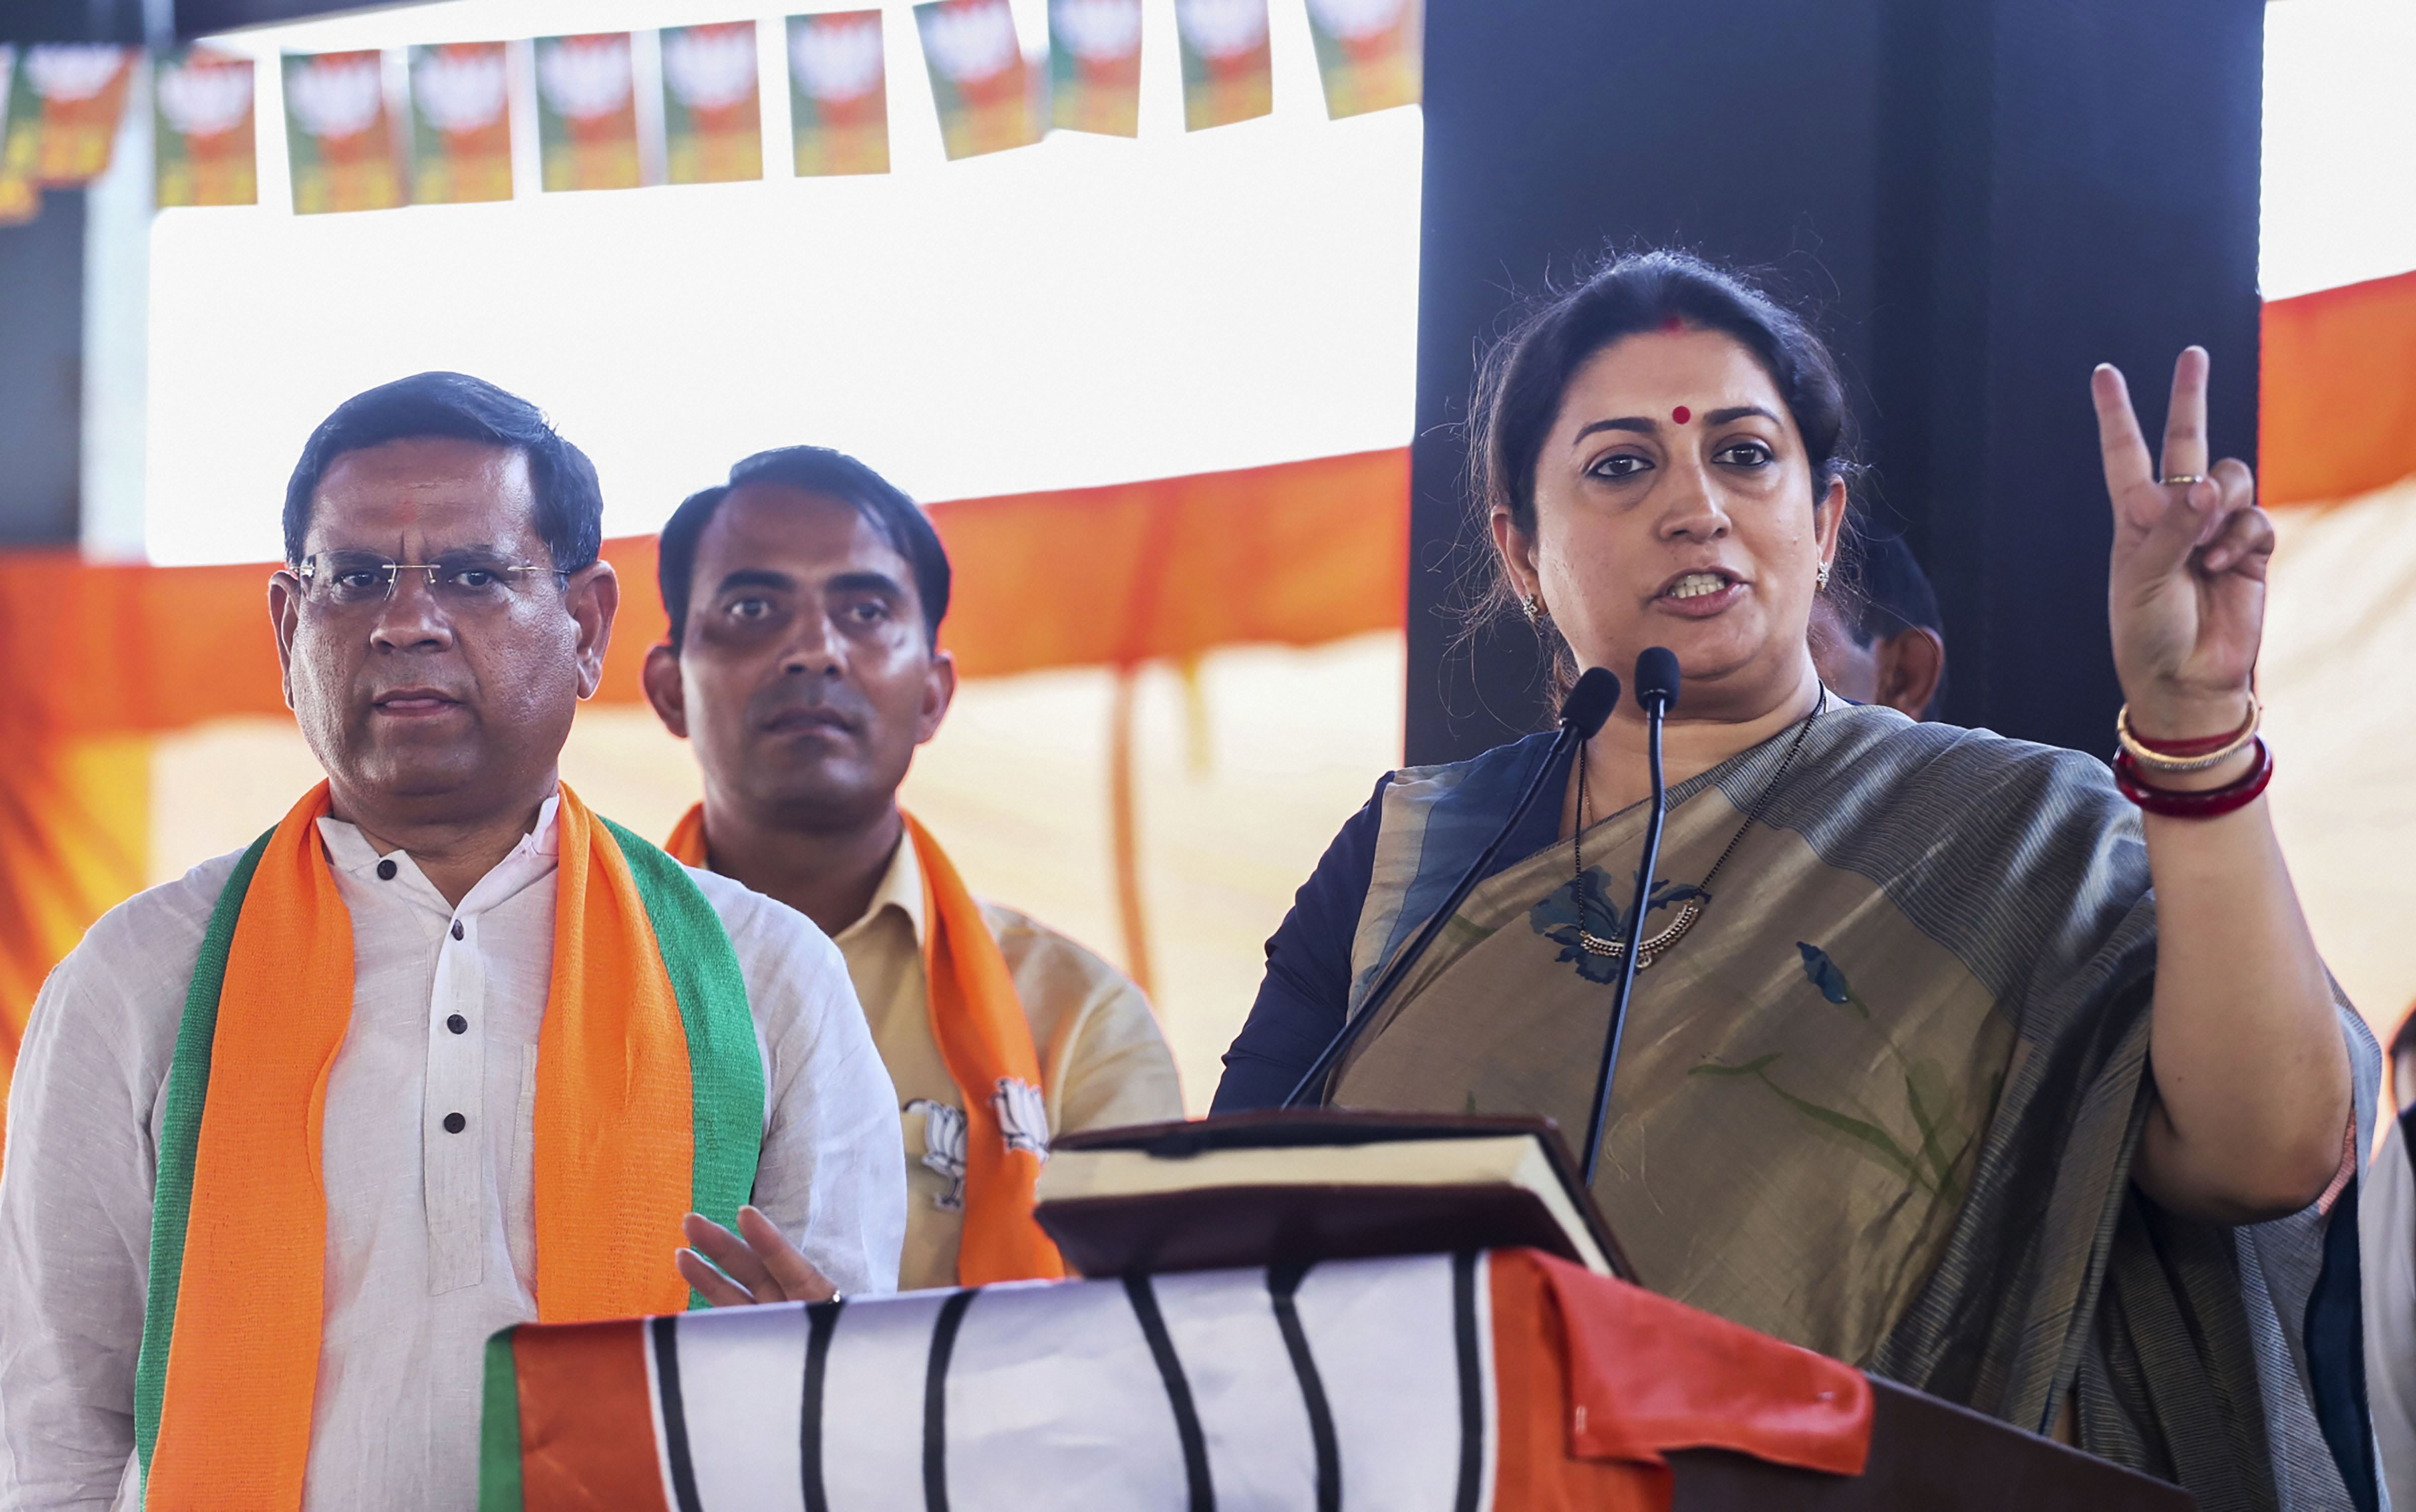 Union minister Smriti Irani addresses a rally ahead of the Haryana Assembly election in support of BJP candidate from Tigaon Rajesh Nagar, in Faridabad, Thursday, October 10, 2019